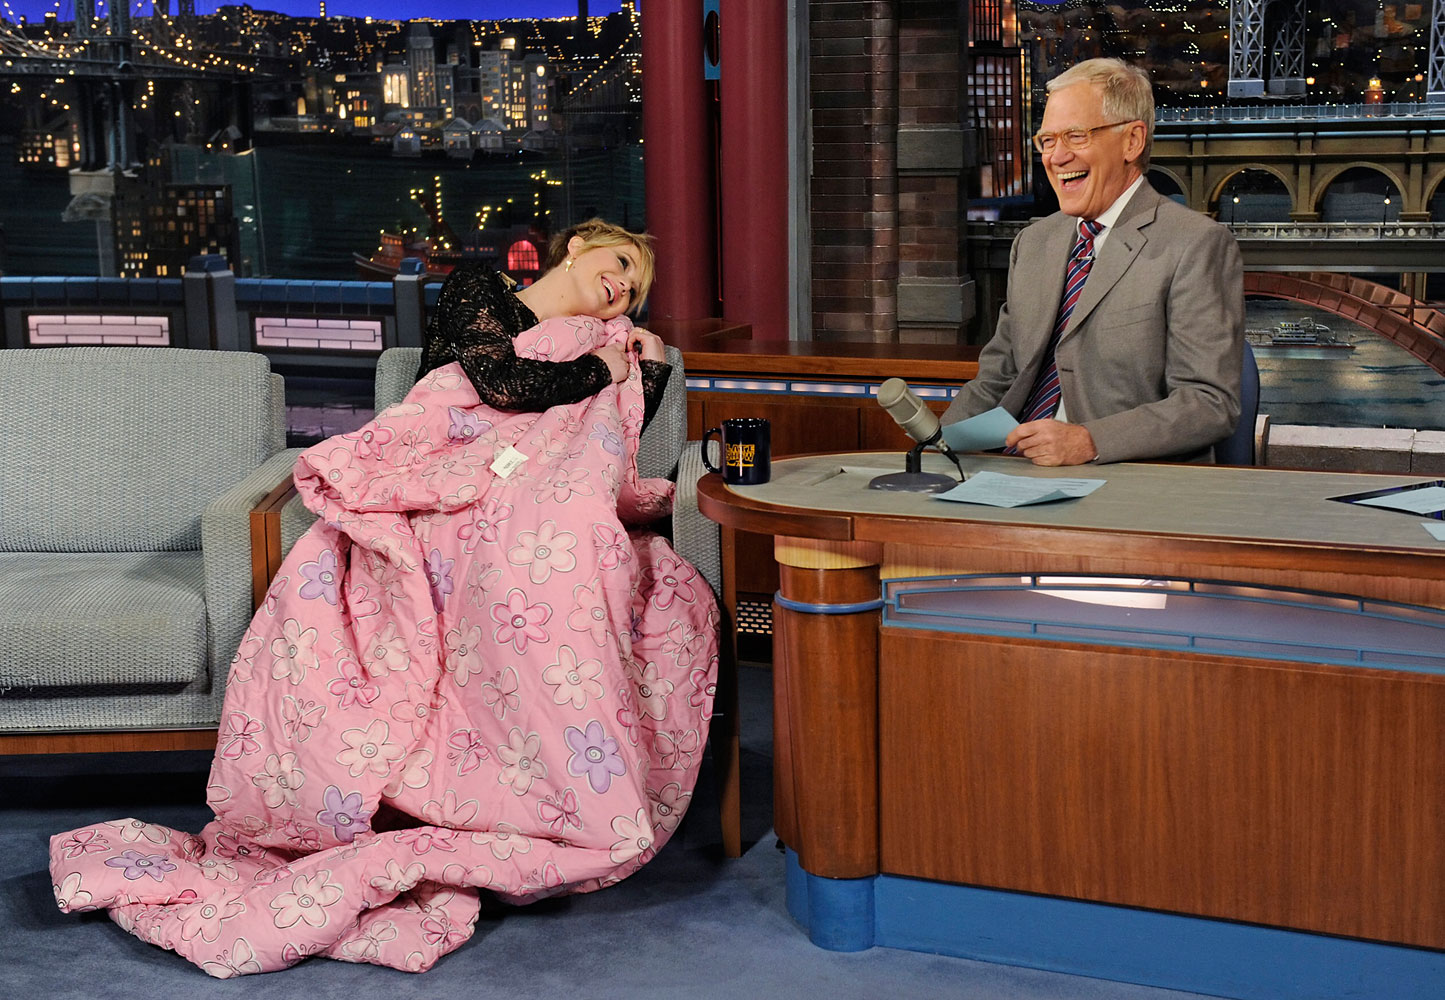 She also got chummy with David Lettermen on the Late Show.